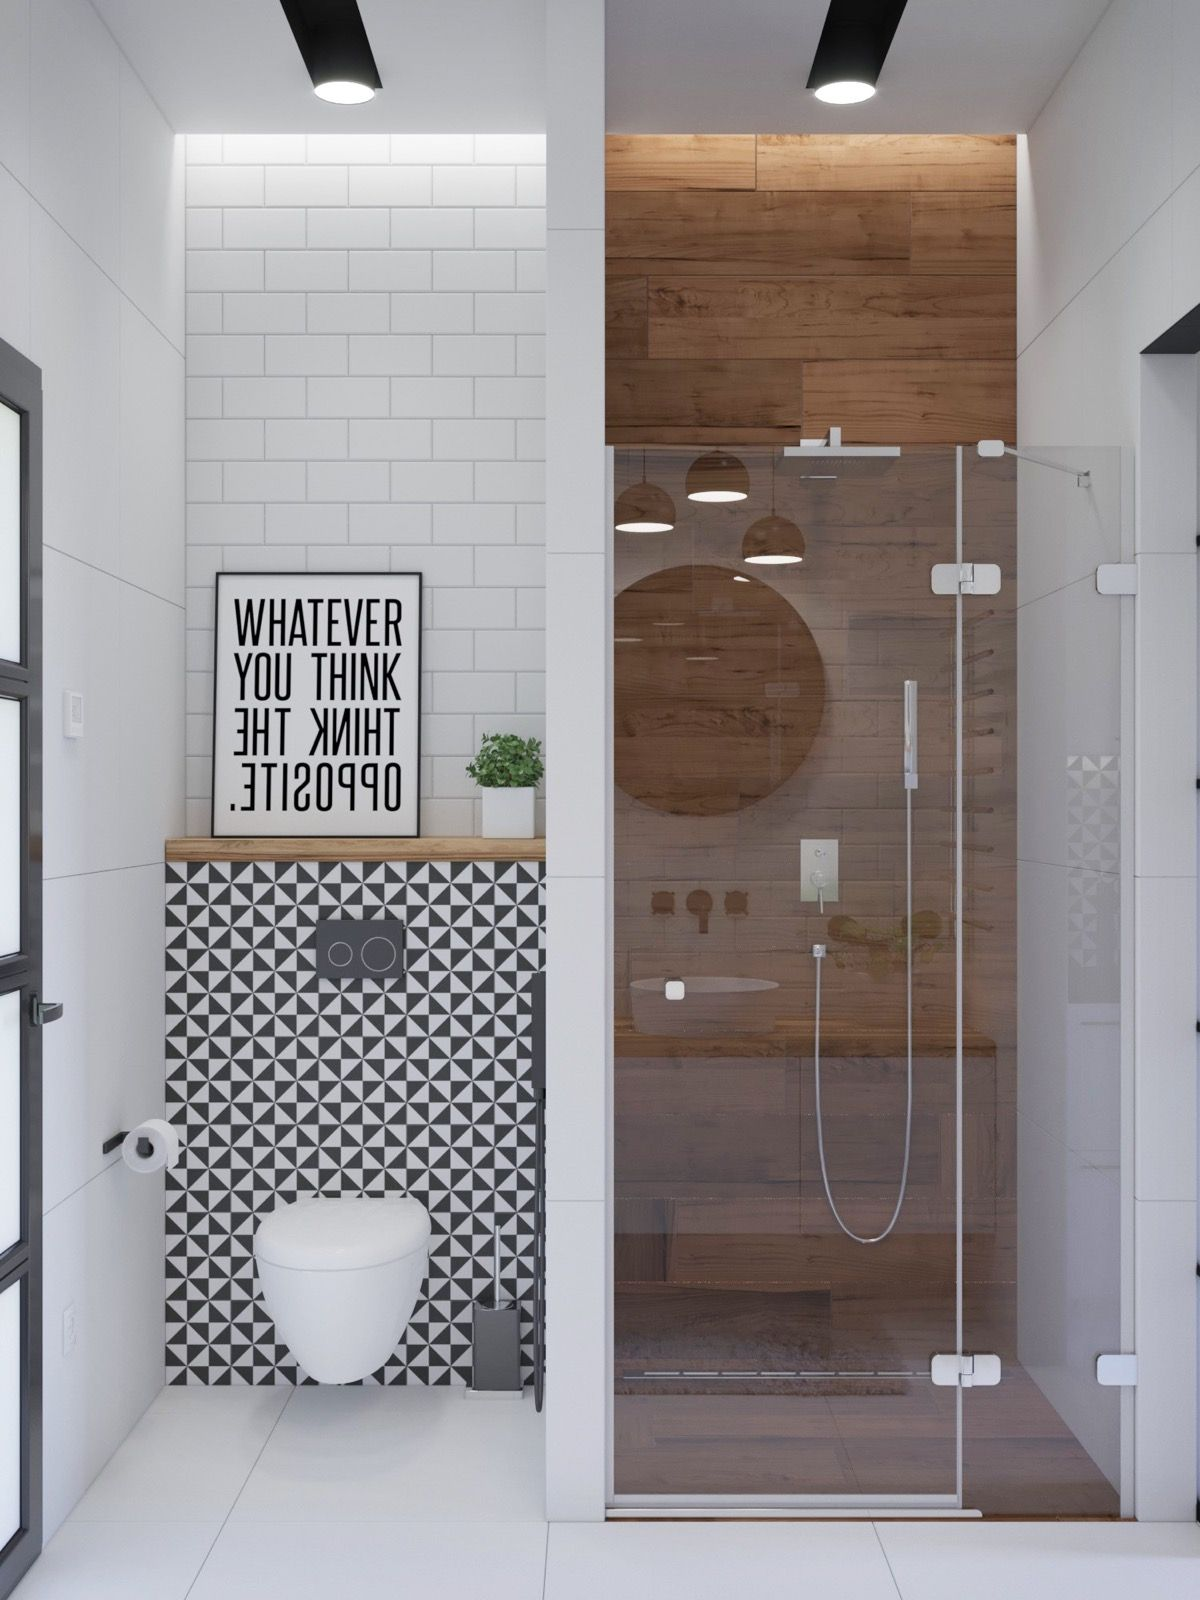 6 Modern Bathroom Design Ideas Plus Tips On How To Accessorize